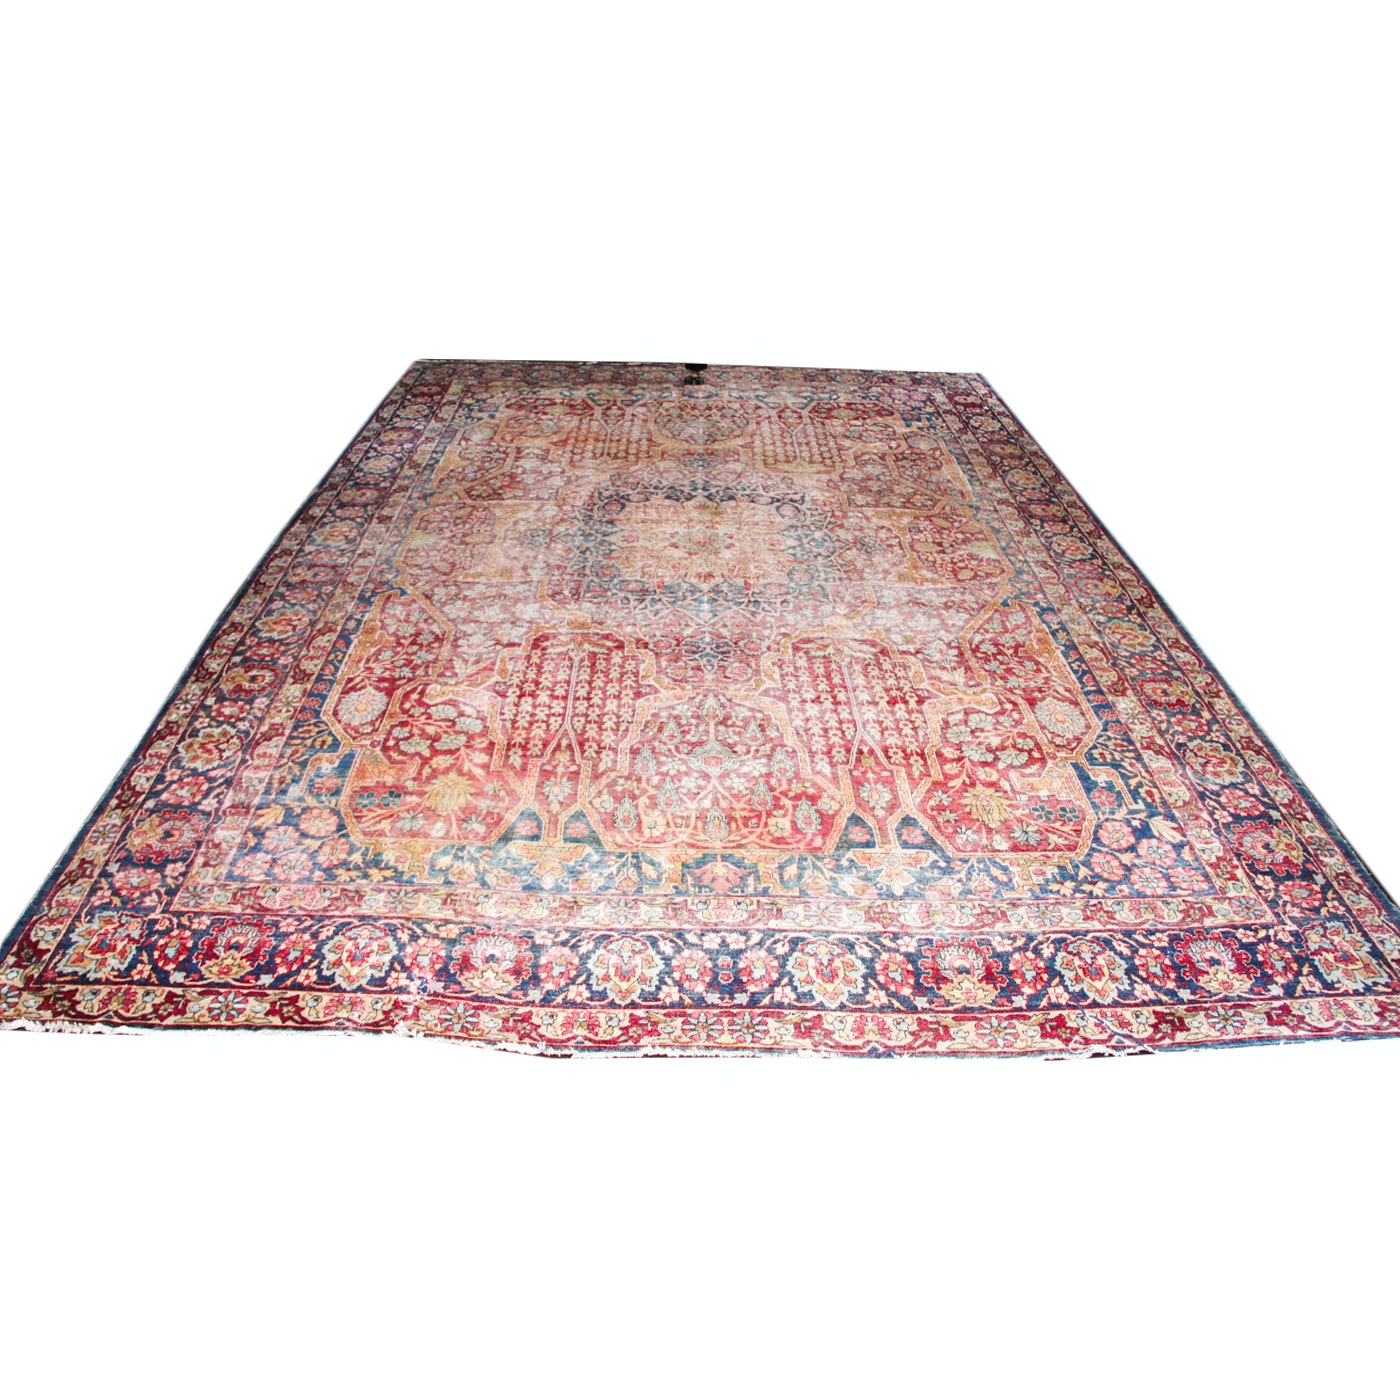 Large Antique Hand-Knotted Persian Wool Area Rug